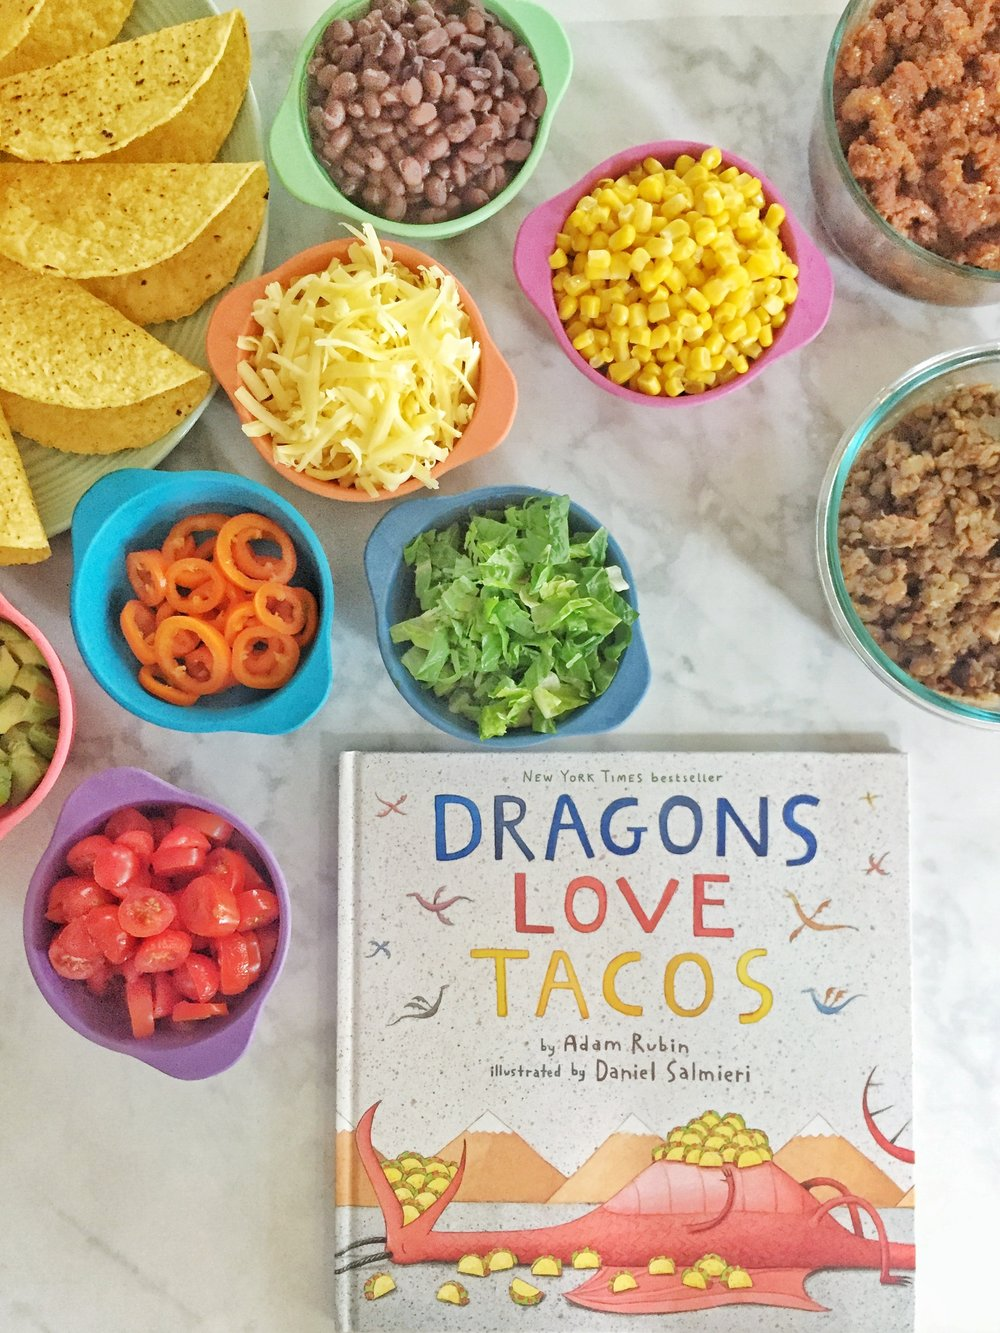 Dragons Love Tacos Taco Bar.jpg